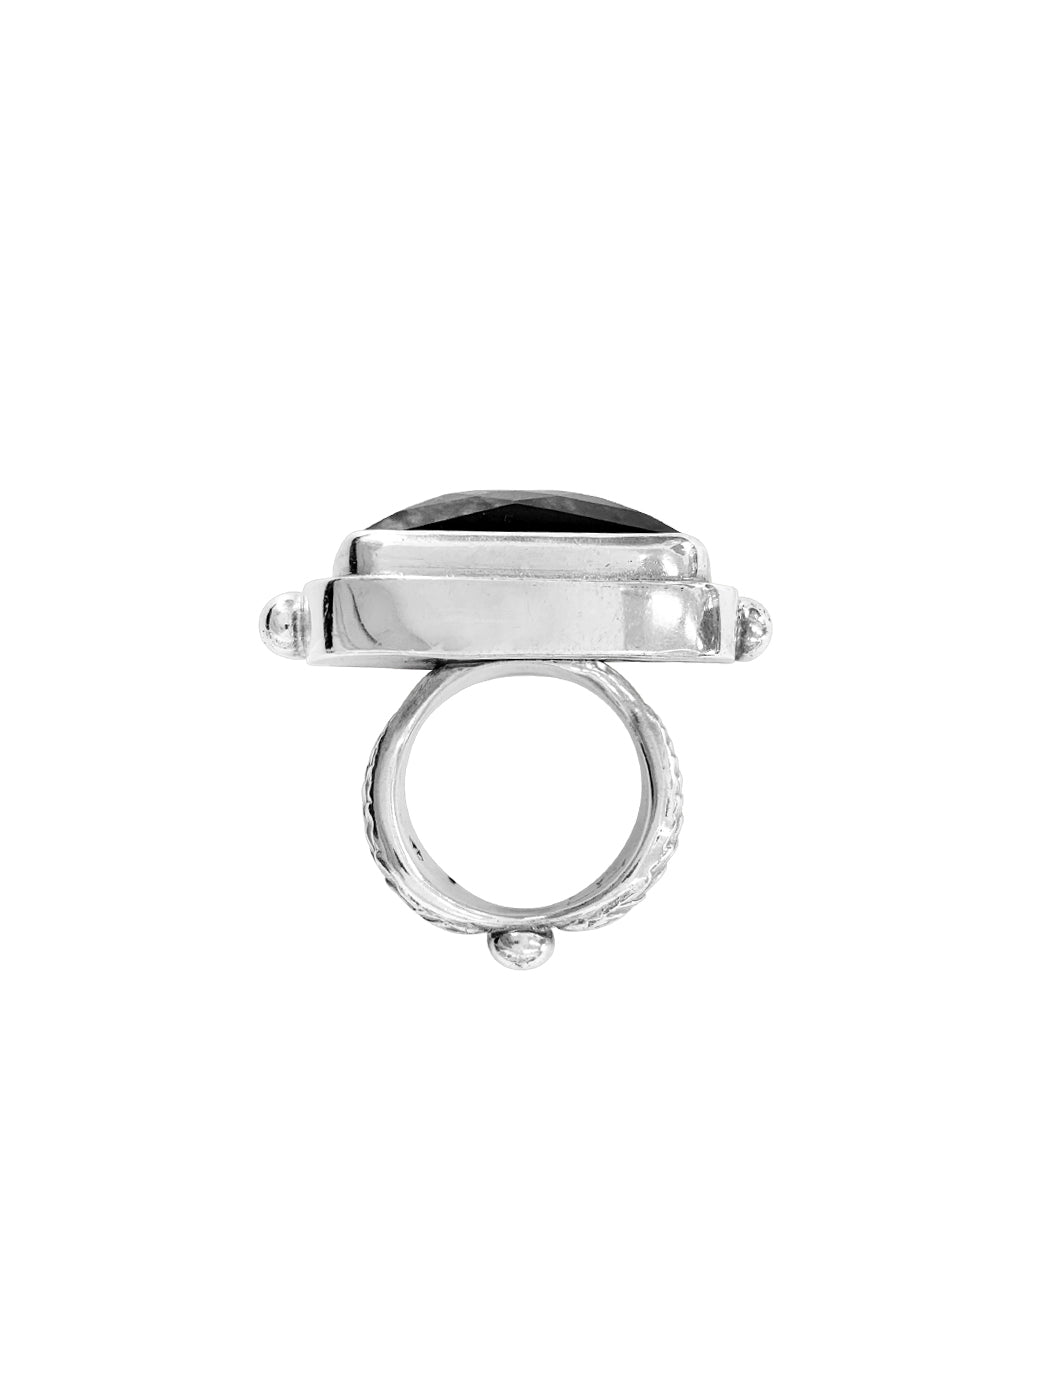 Fiorina Jewellery Rectangle Cocktail Ring Black Onyx Side View